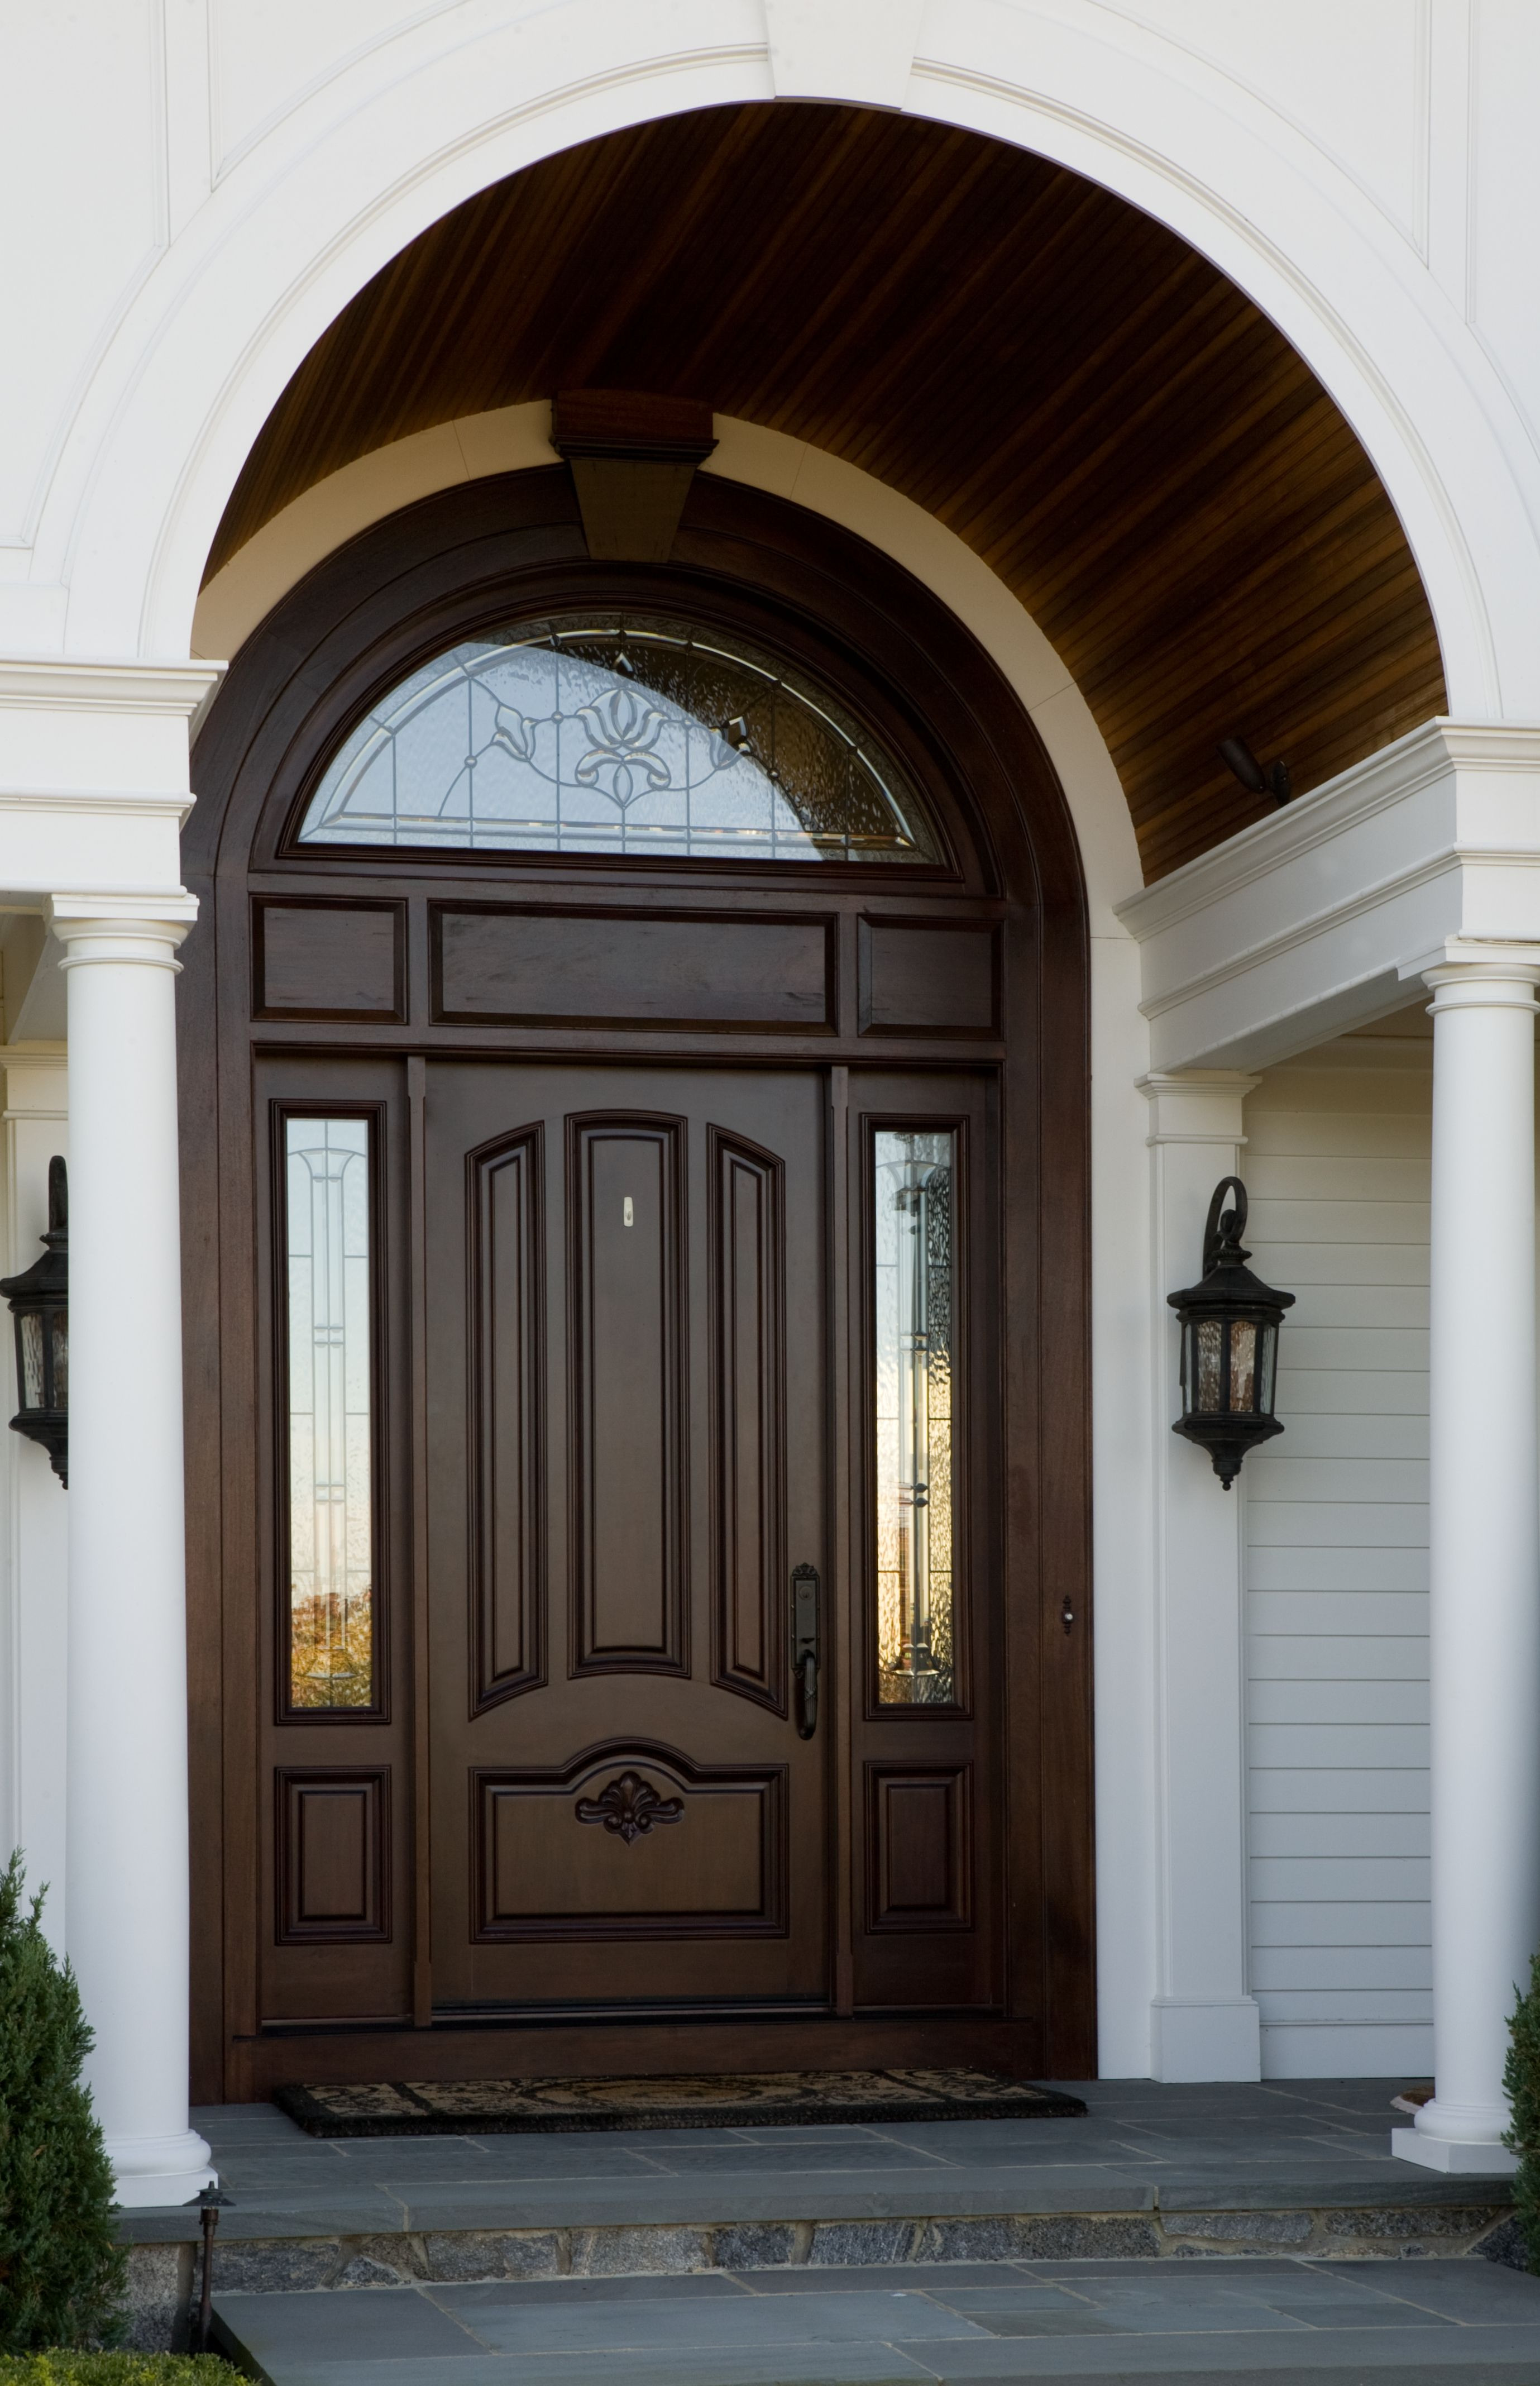 House Main Gate Arch Design Fresh A Beautiful Wooden Arch Accentuates the Curved Window Above